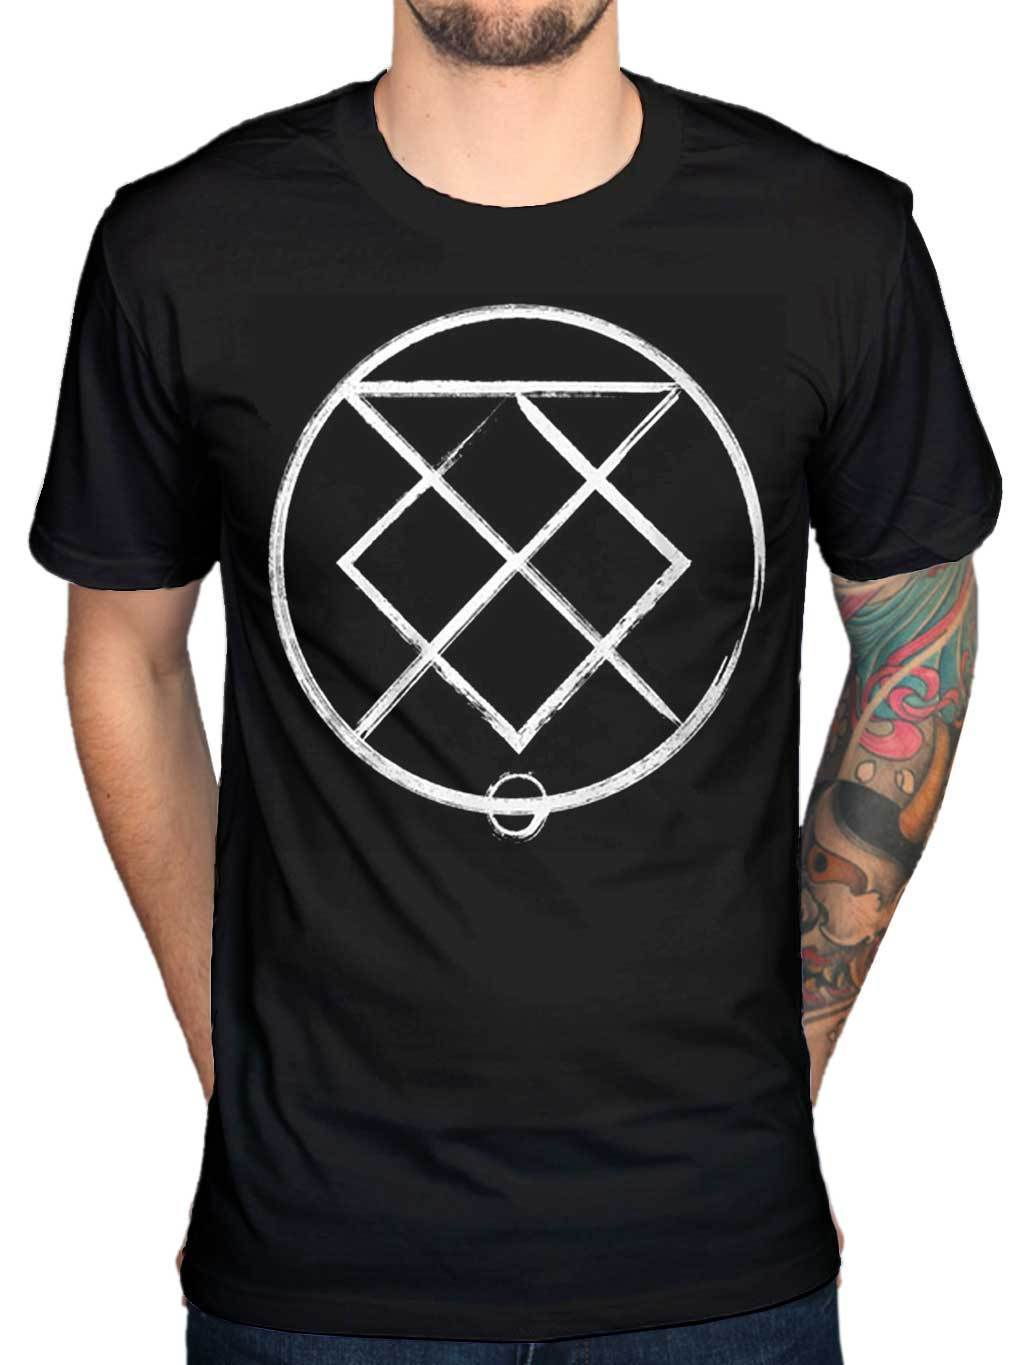 Official Bury Tomorrow Runes T Shirt Metal Rock Indie Portraits Union Of Crowns Novelty Cool Tops